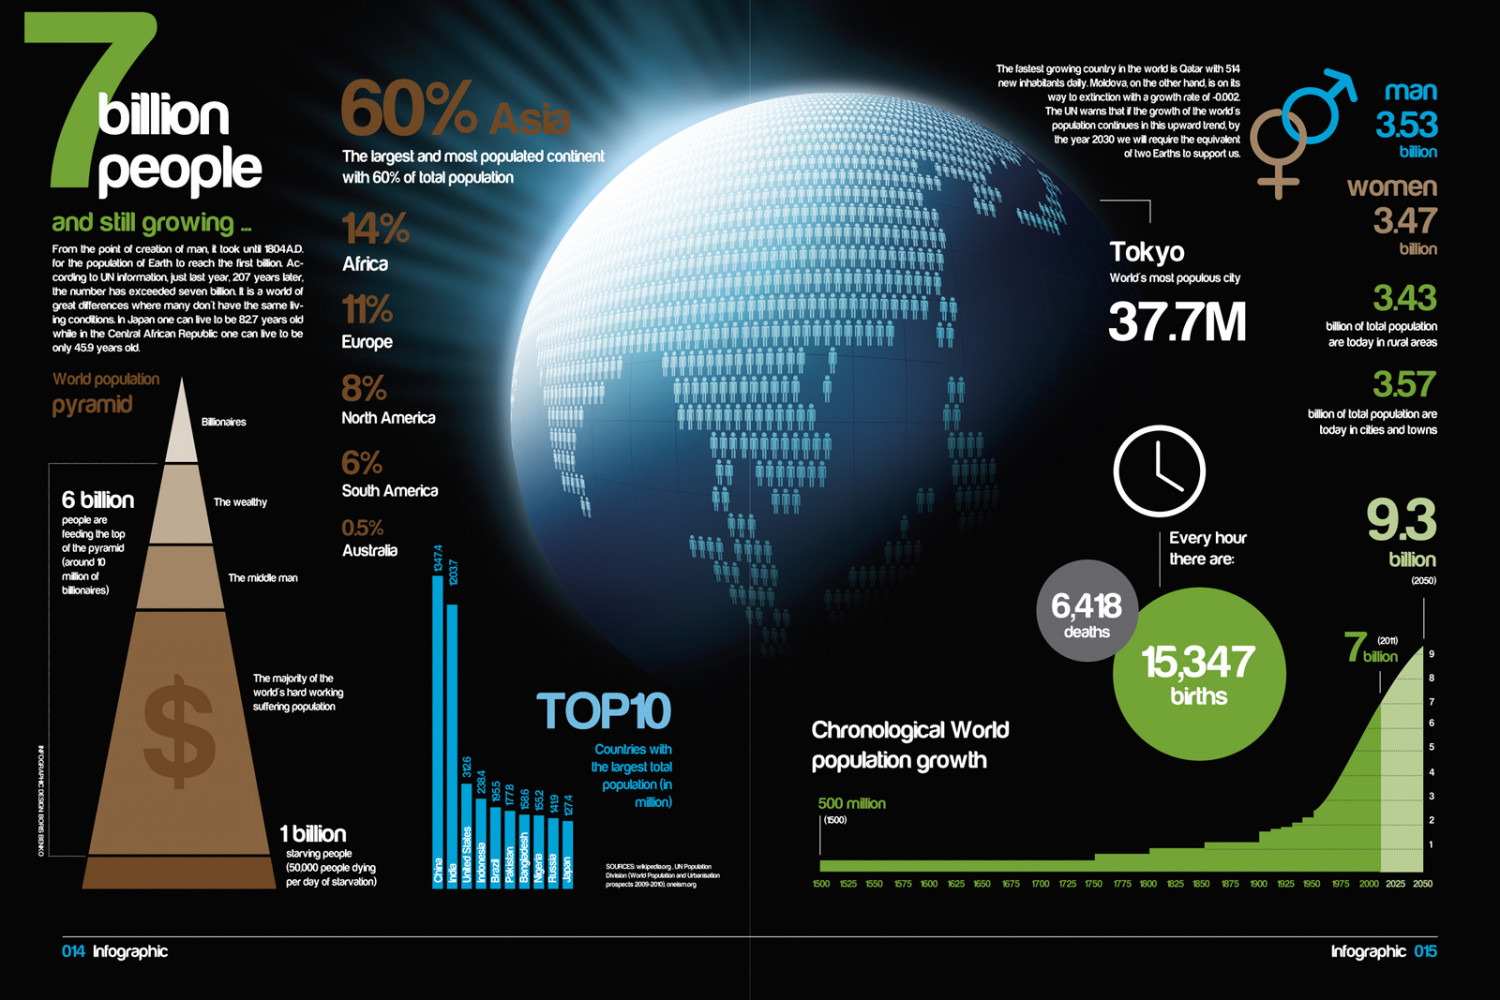 7 Billion People Infographic